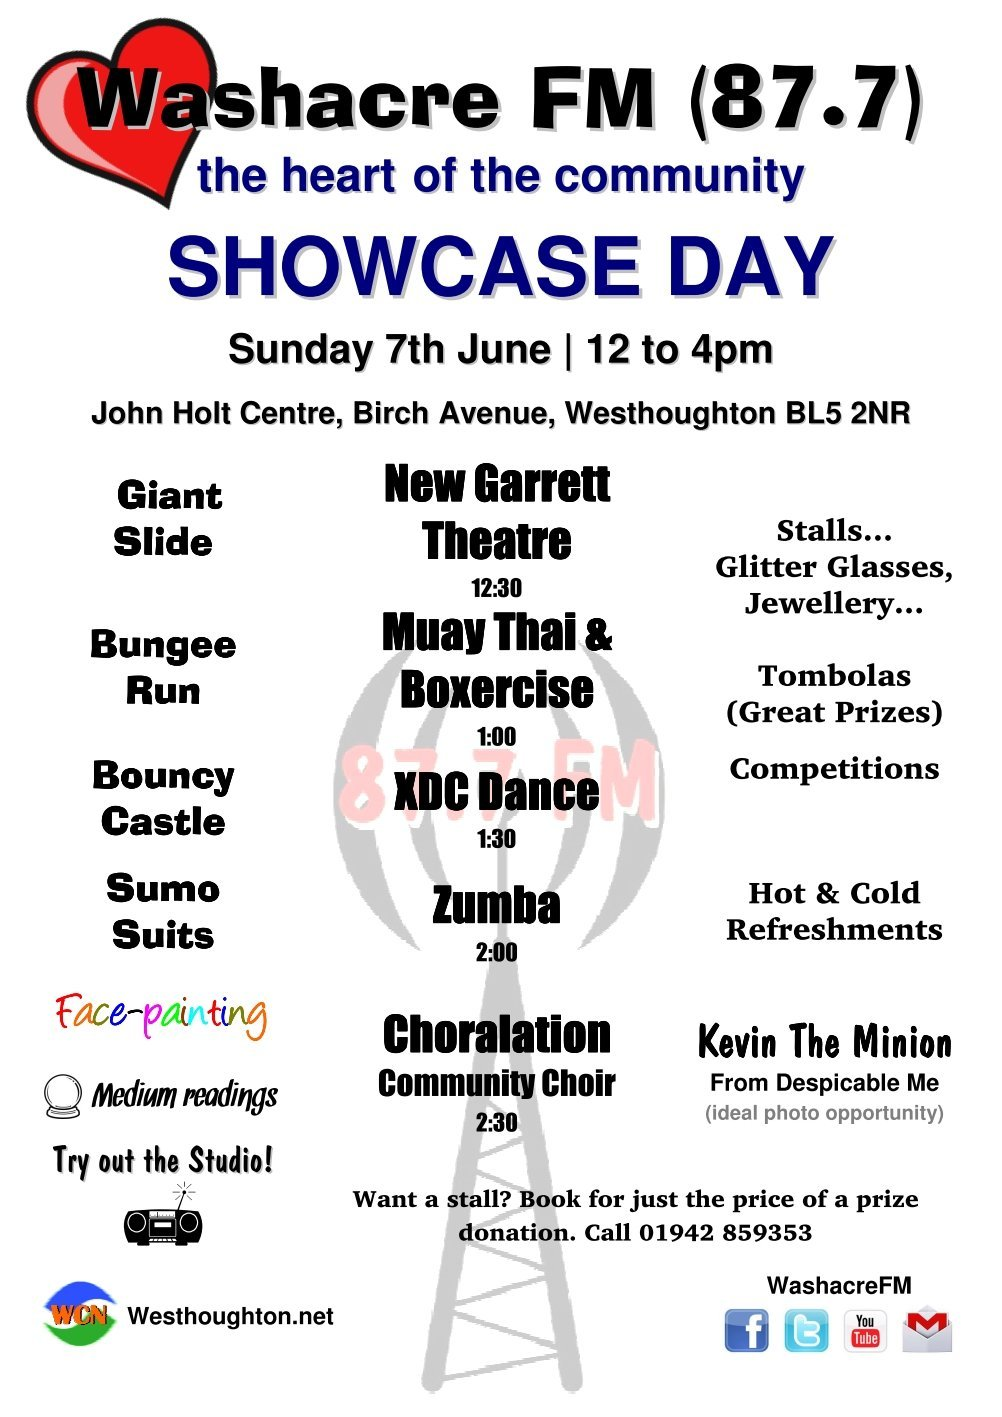 Washacre FM 2015 Showcase Day - Poster